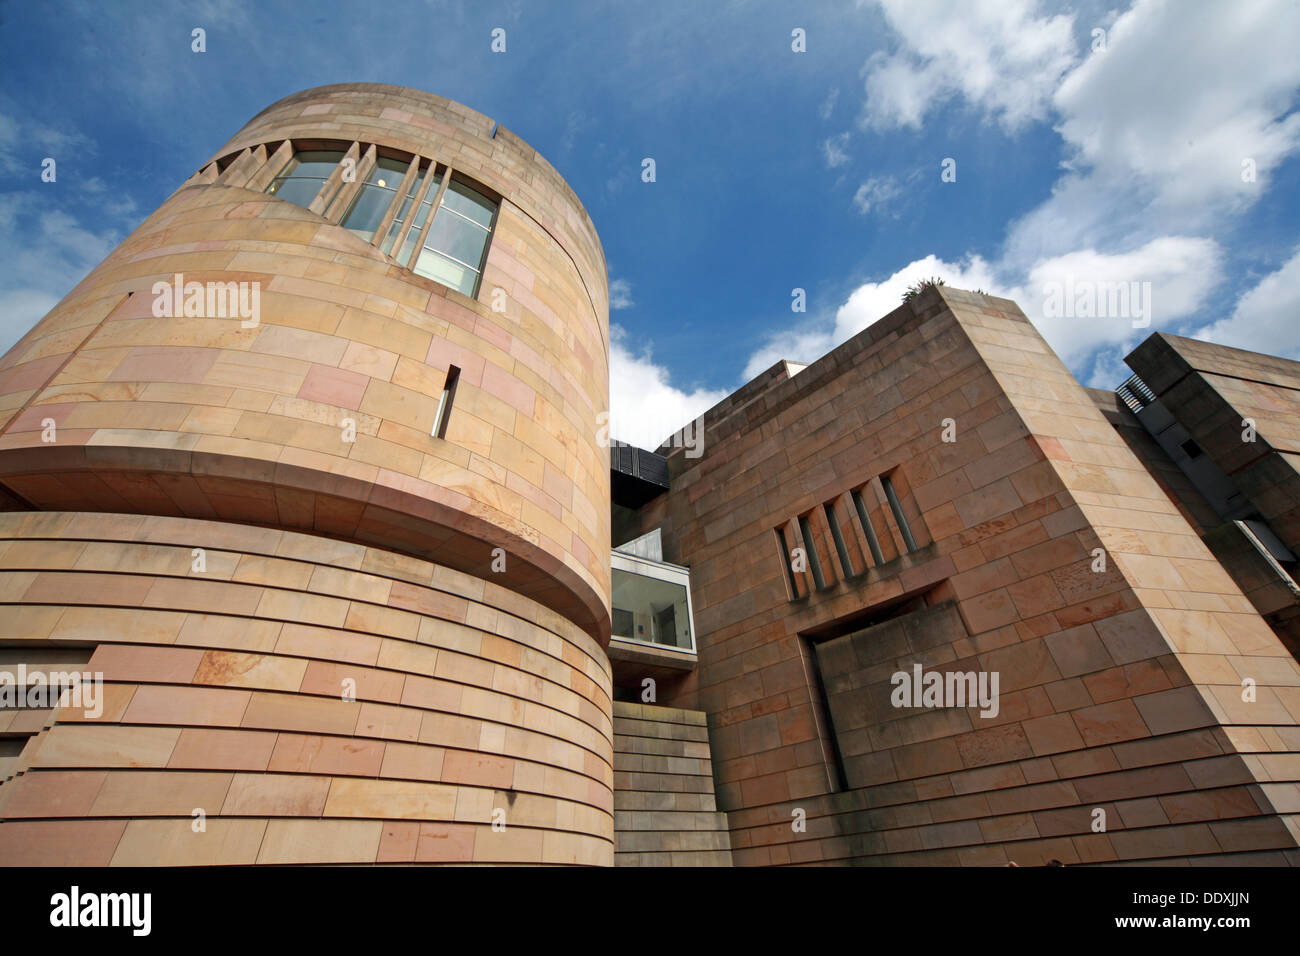 New exterior of National Museum of Scotland  Chambers St Edinburgh city, Scotland UK EH1 1JF - Stock Image